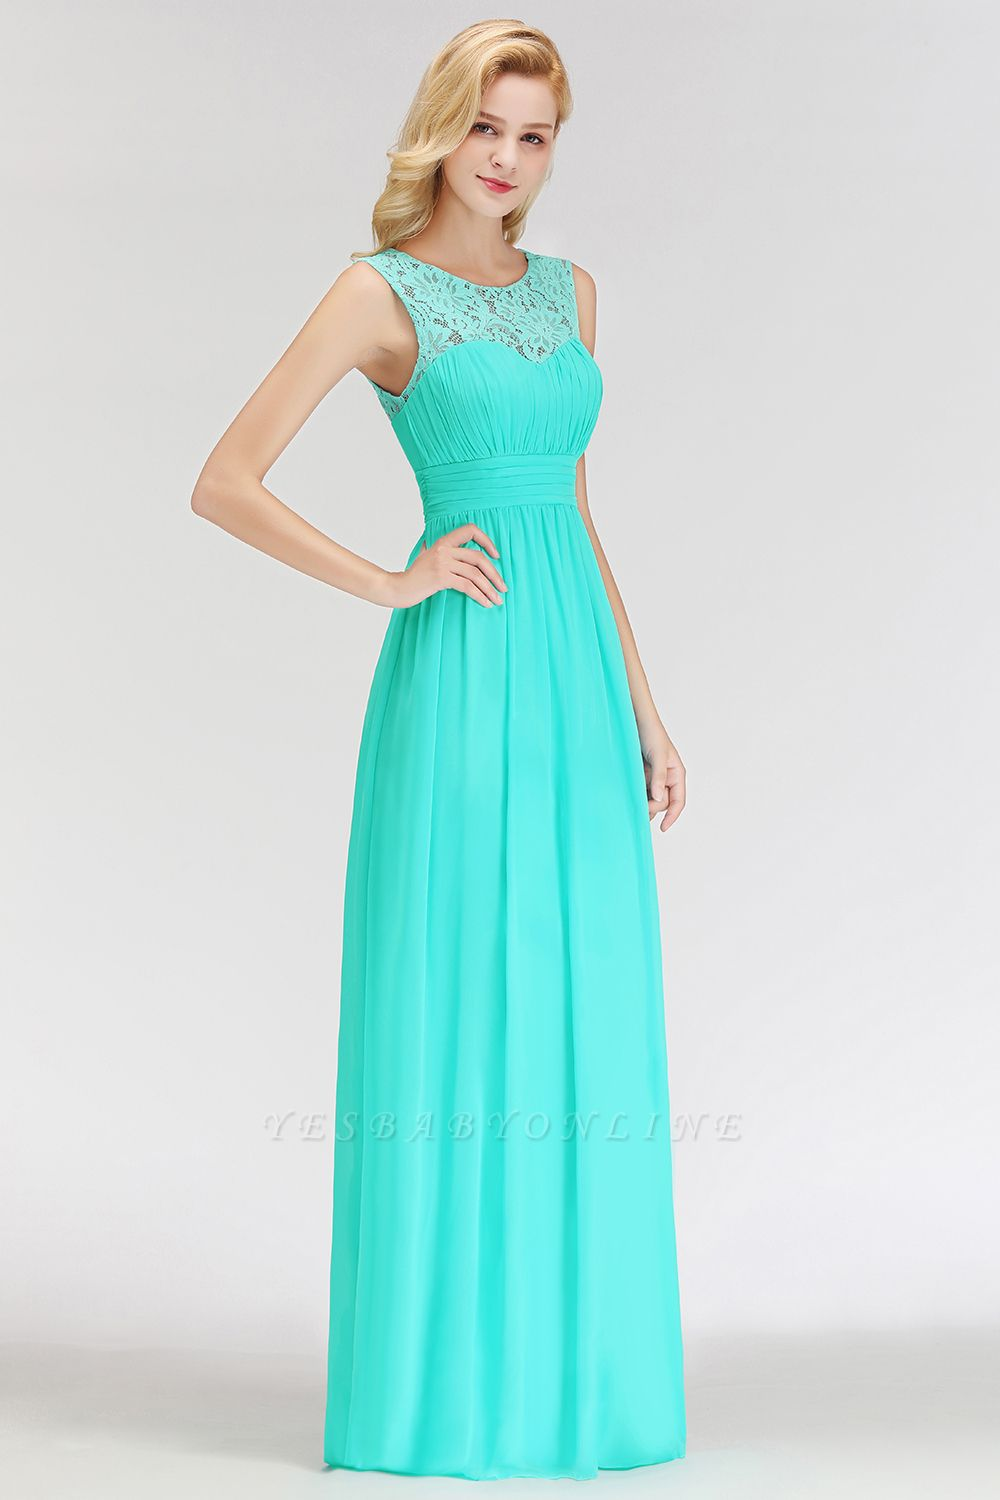 A-line Sleevless Long Lace Appliques Neckline Bridesmaid Dress In Stock